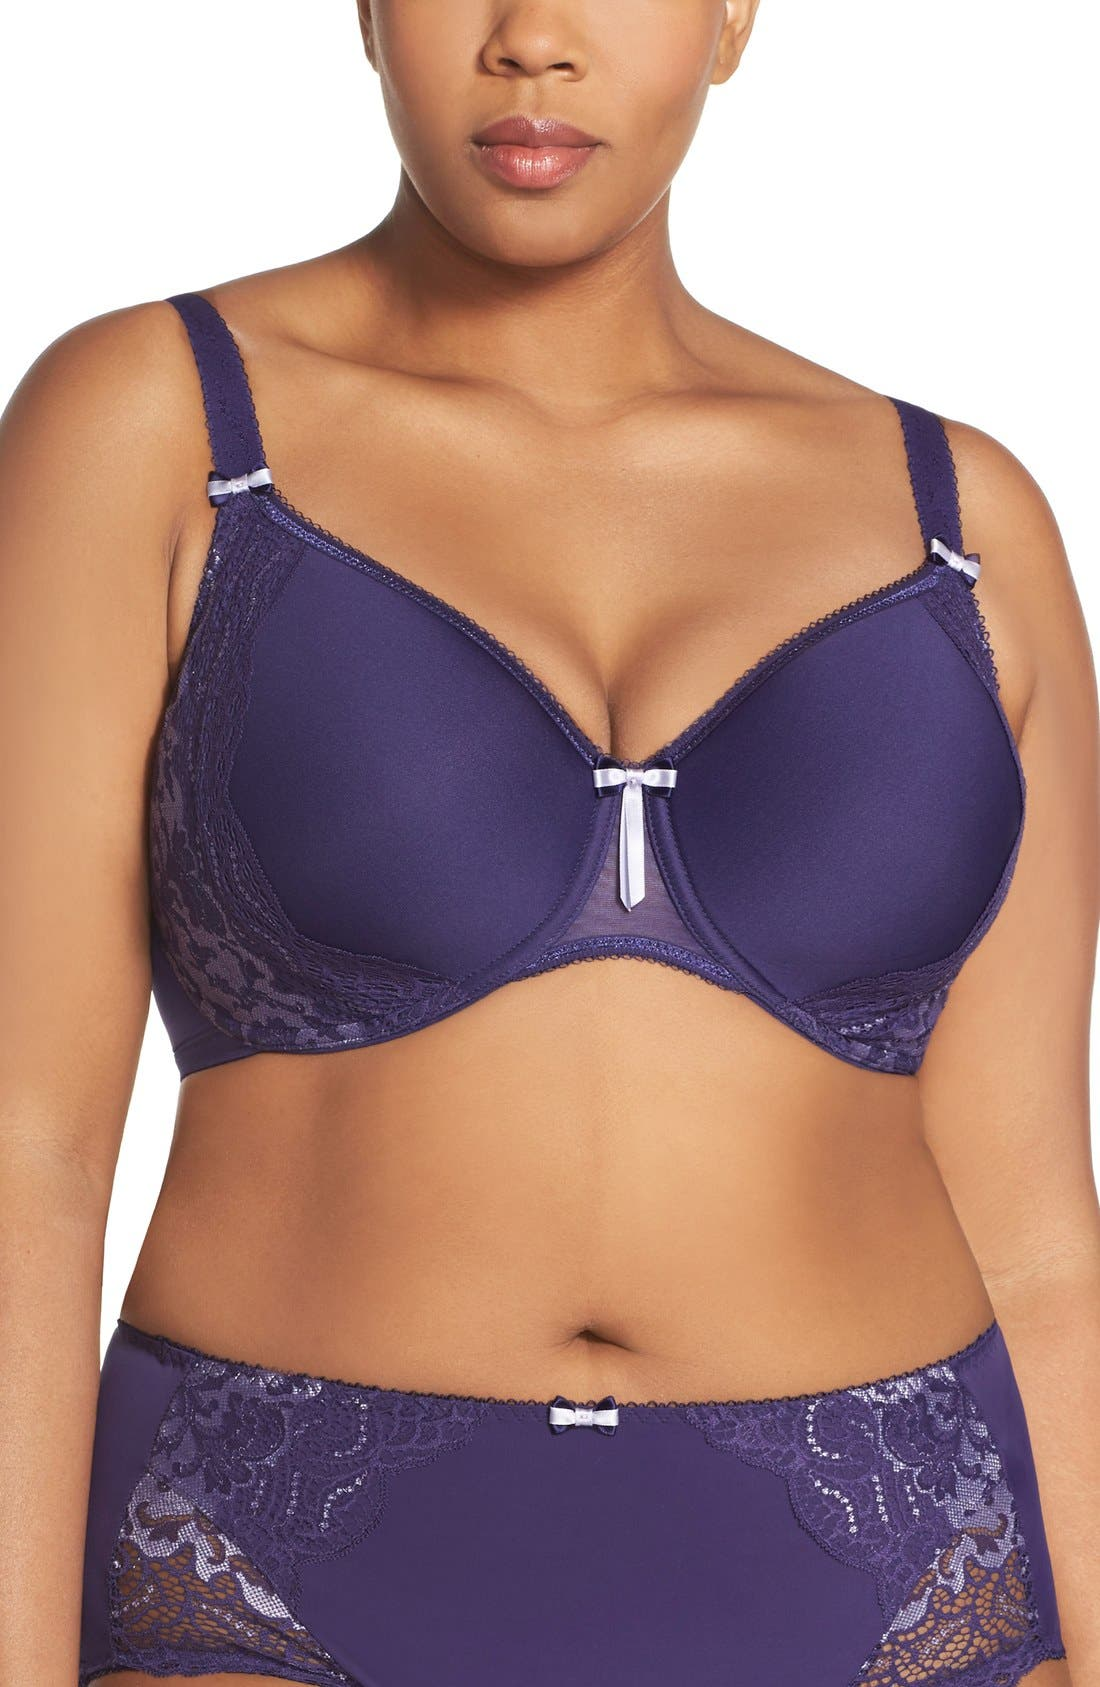 Alternate Image 1 Selected - Elomi 'Amelia' Molded Underwire Bra (Plus Size)